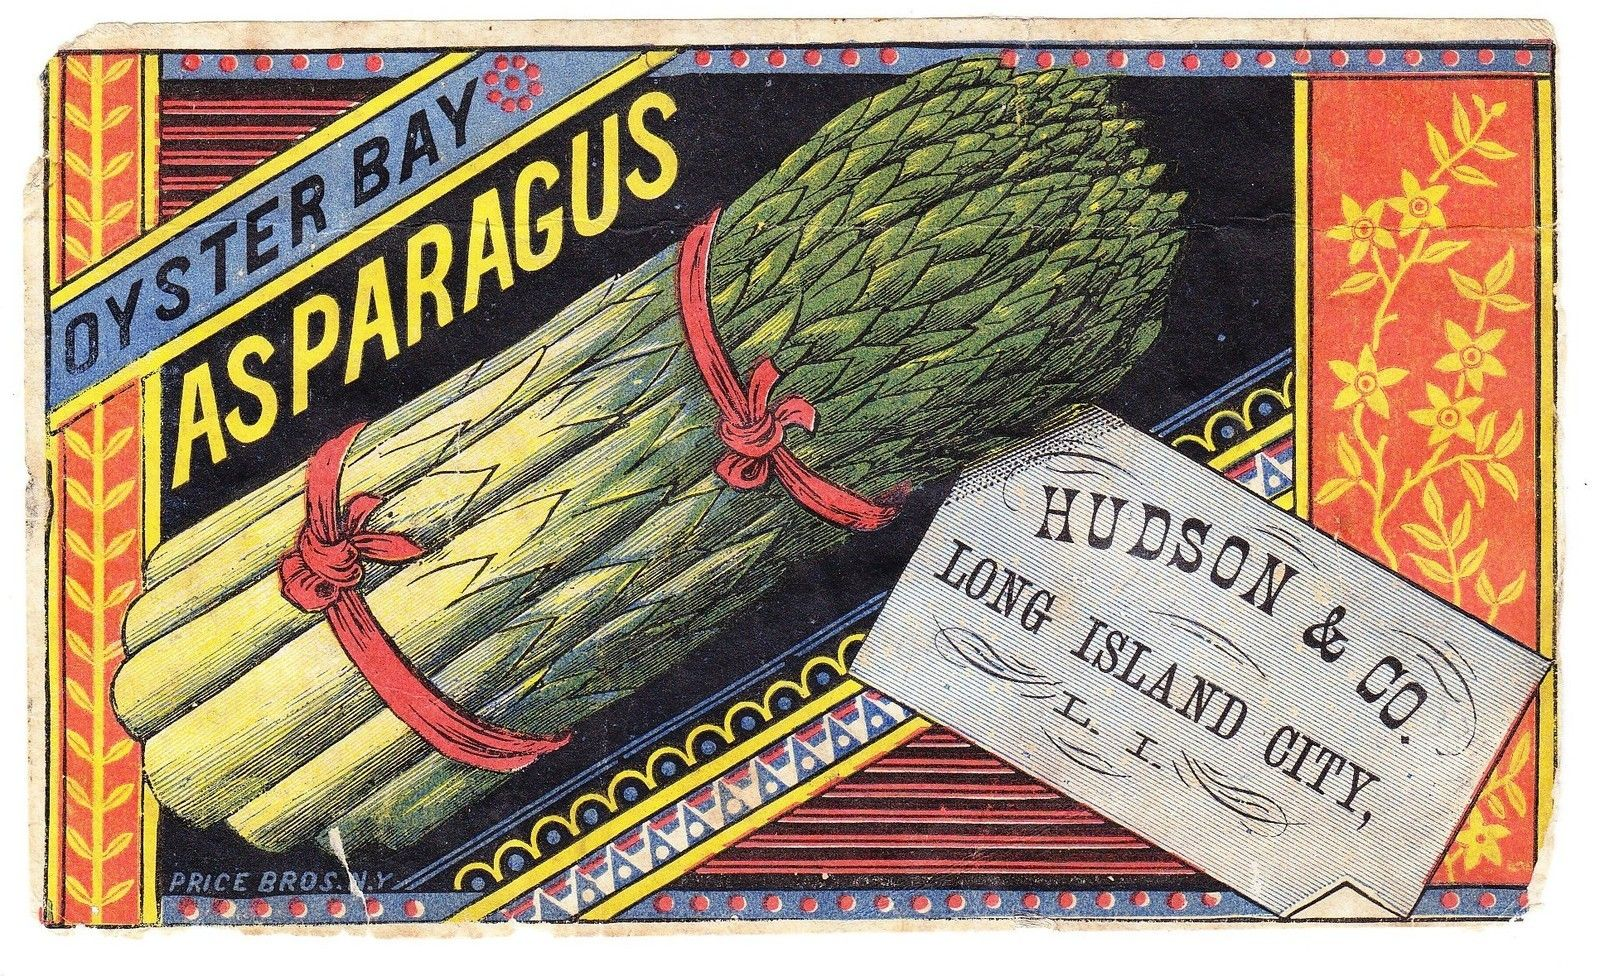 19th century asparagus label.